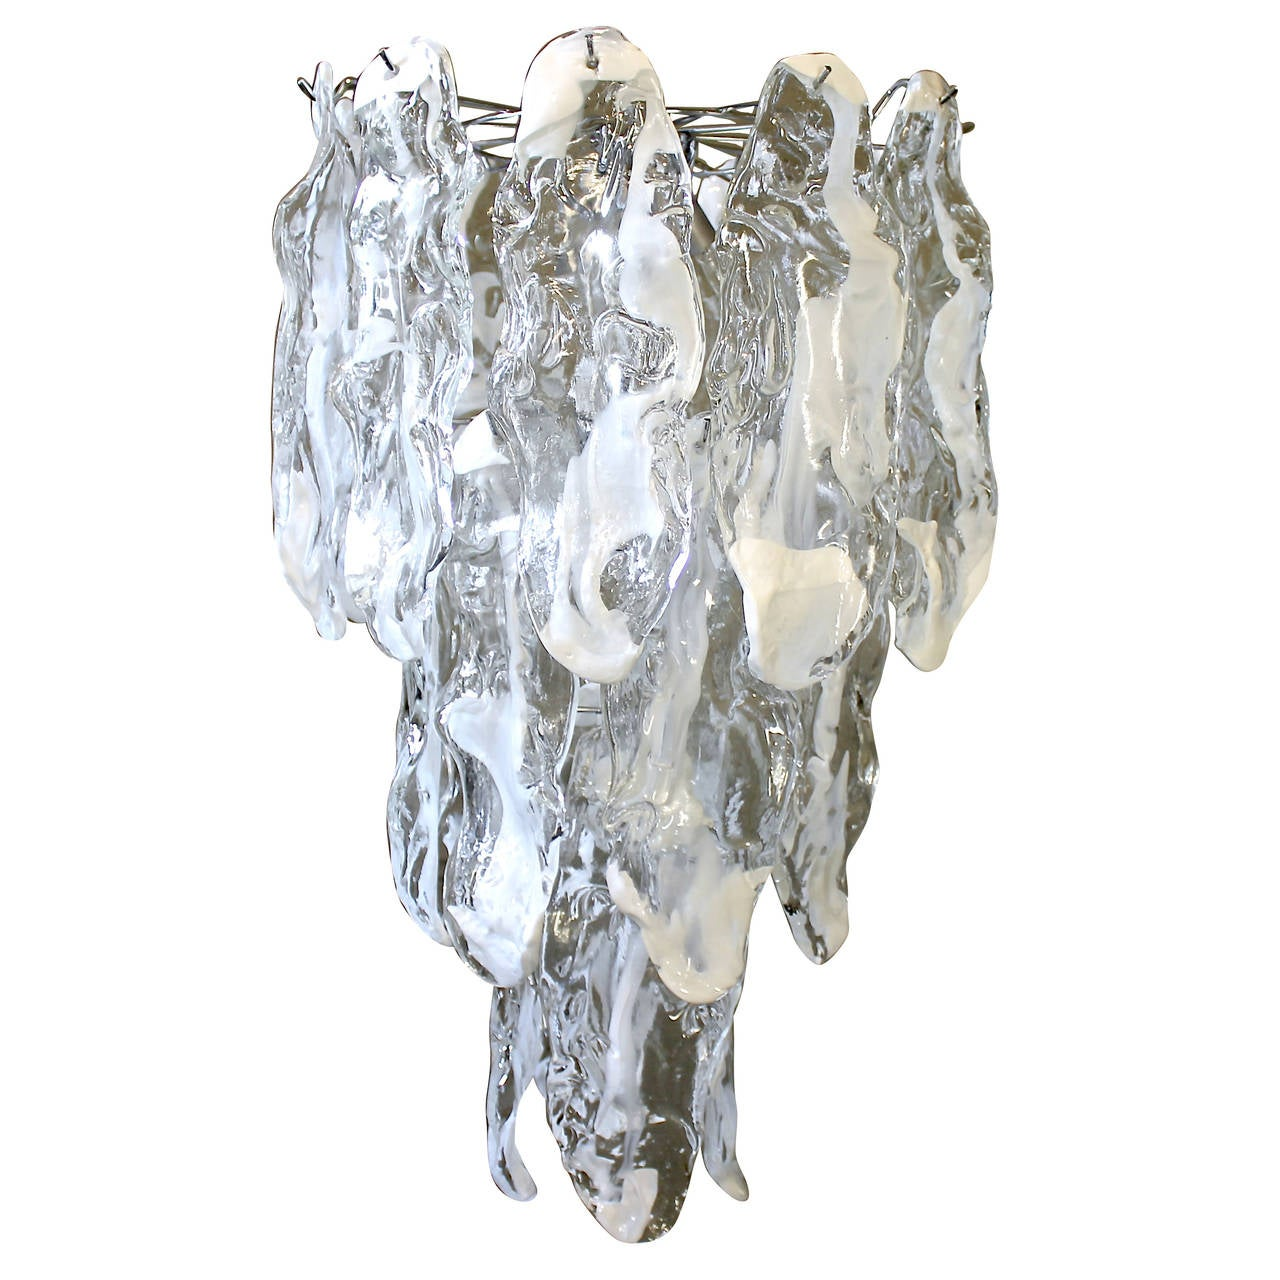 Murano Textured Glass Chandelier by Mazzega 1